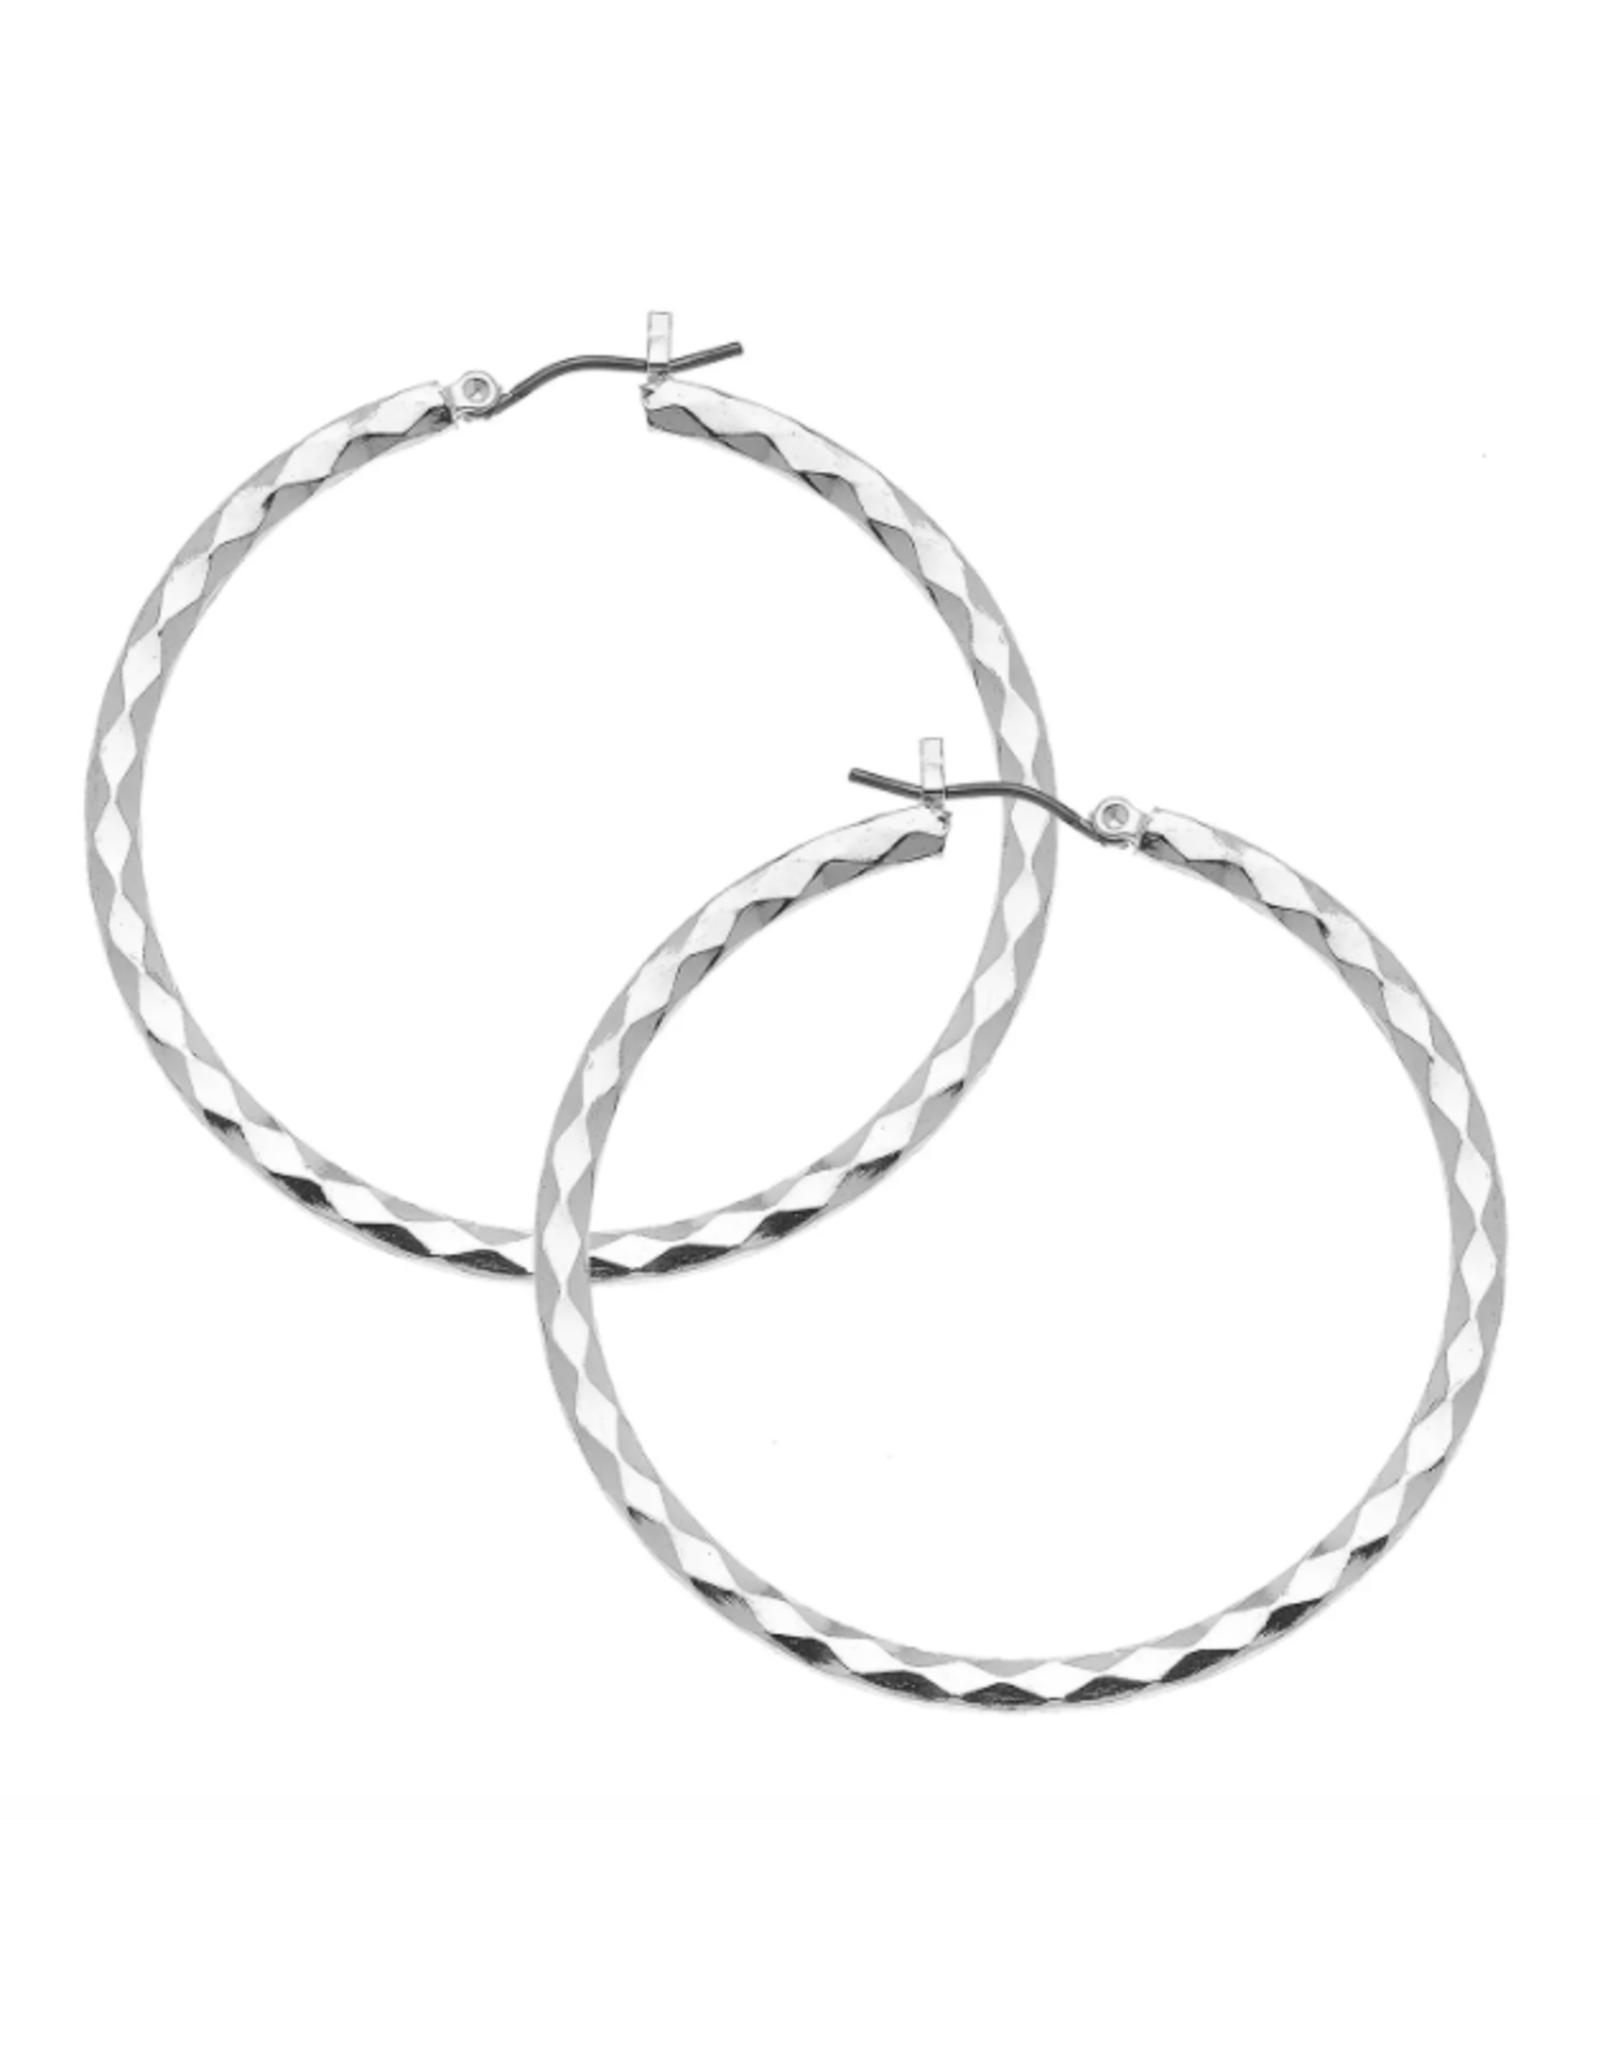 Susan Shaw Textured Silver Hoop Earrings by Susan Shaw